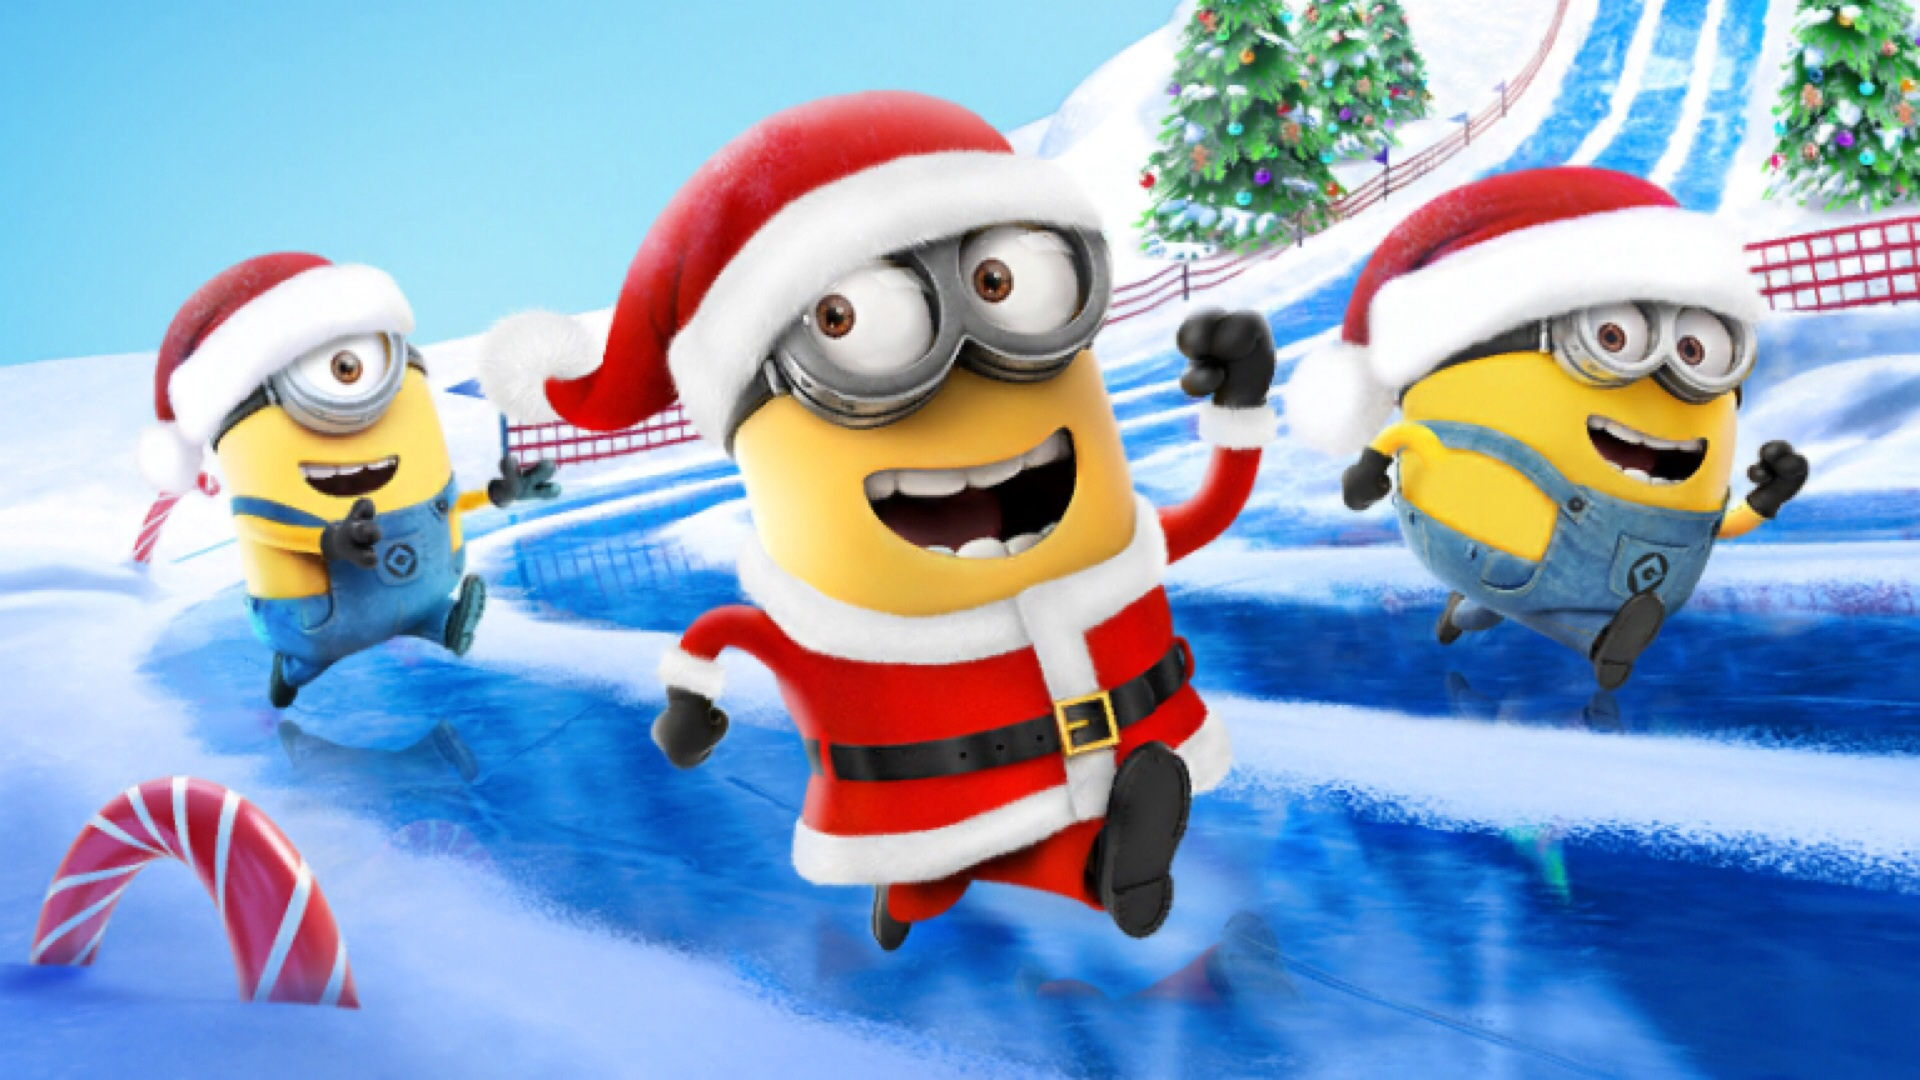 mobile game despicable me minion rush gets festive update - Minion Rush Christmas